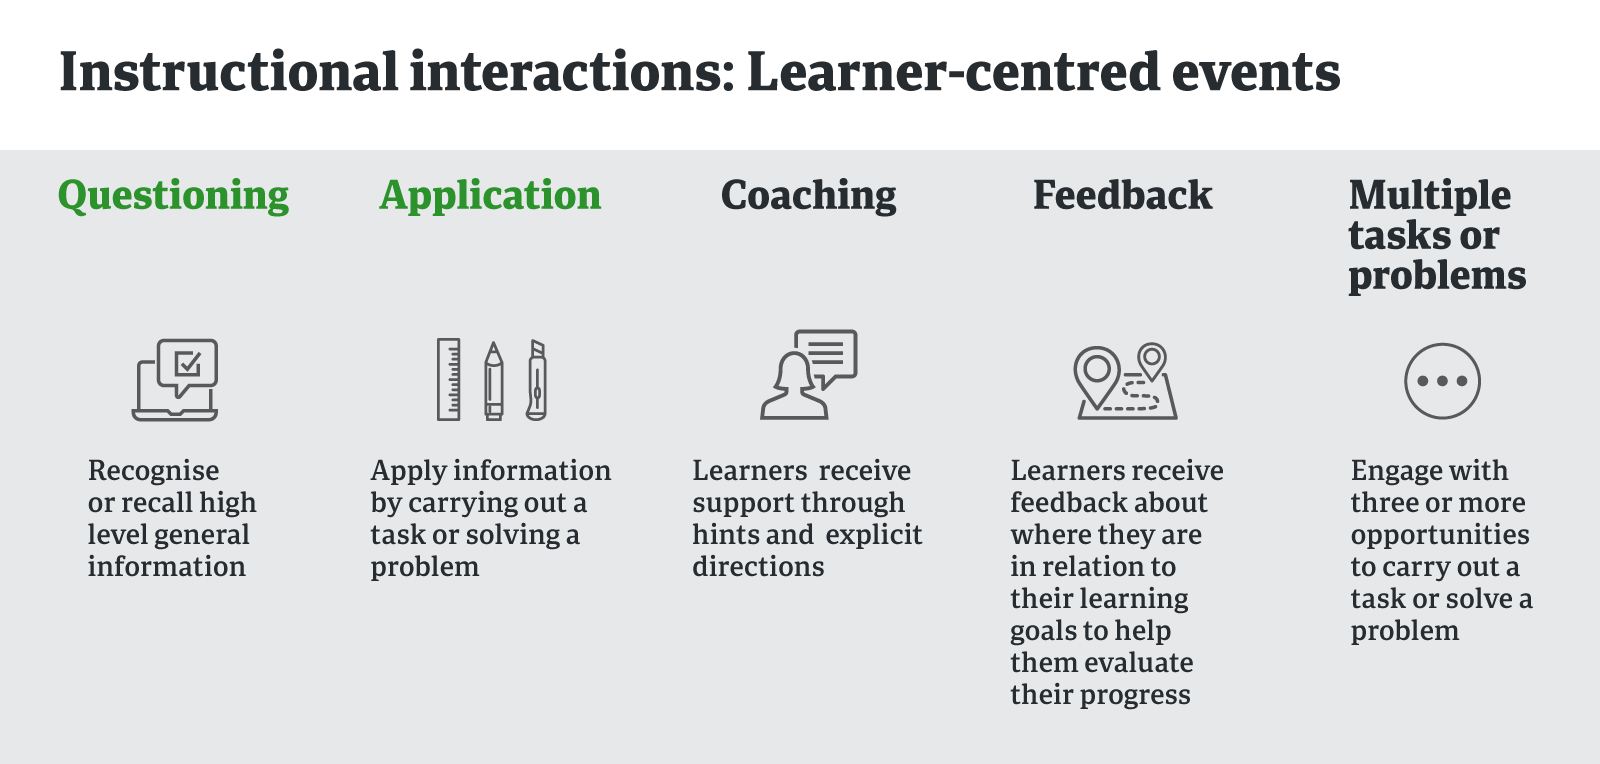 Instructional interactions: learner-centred events